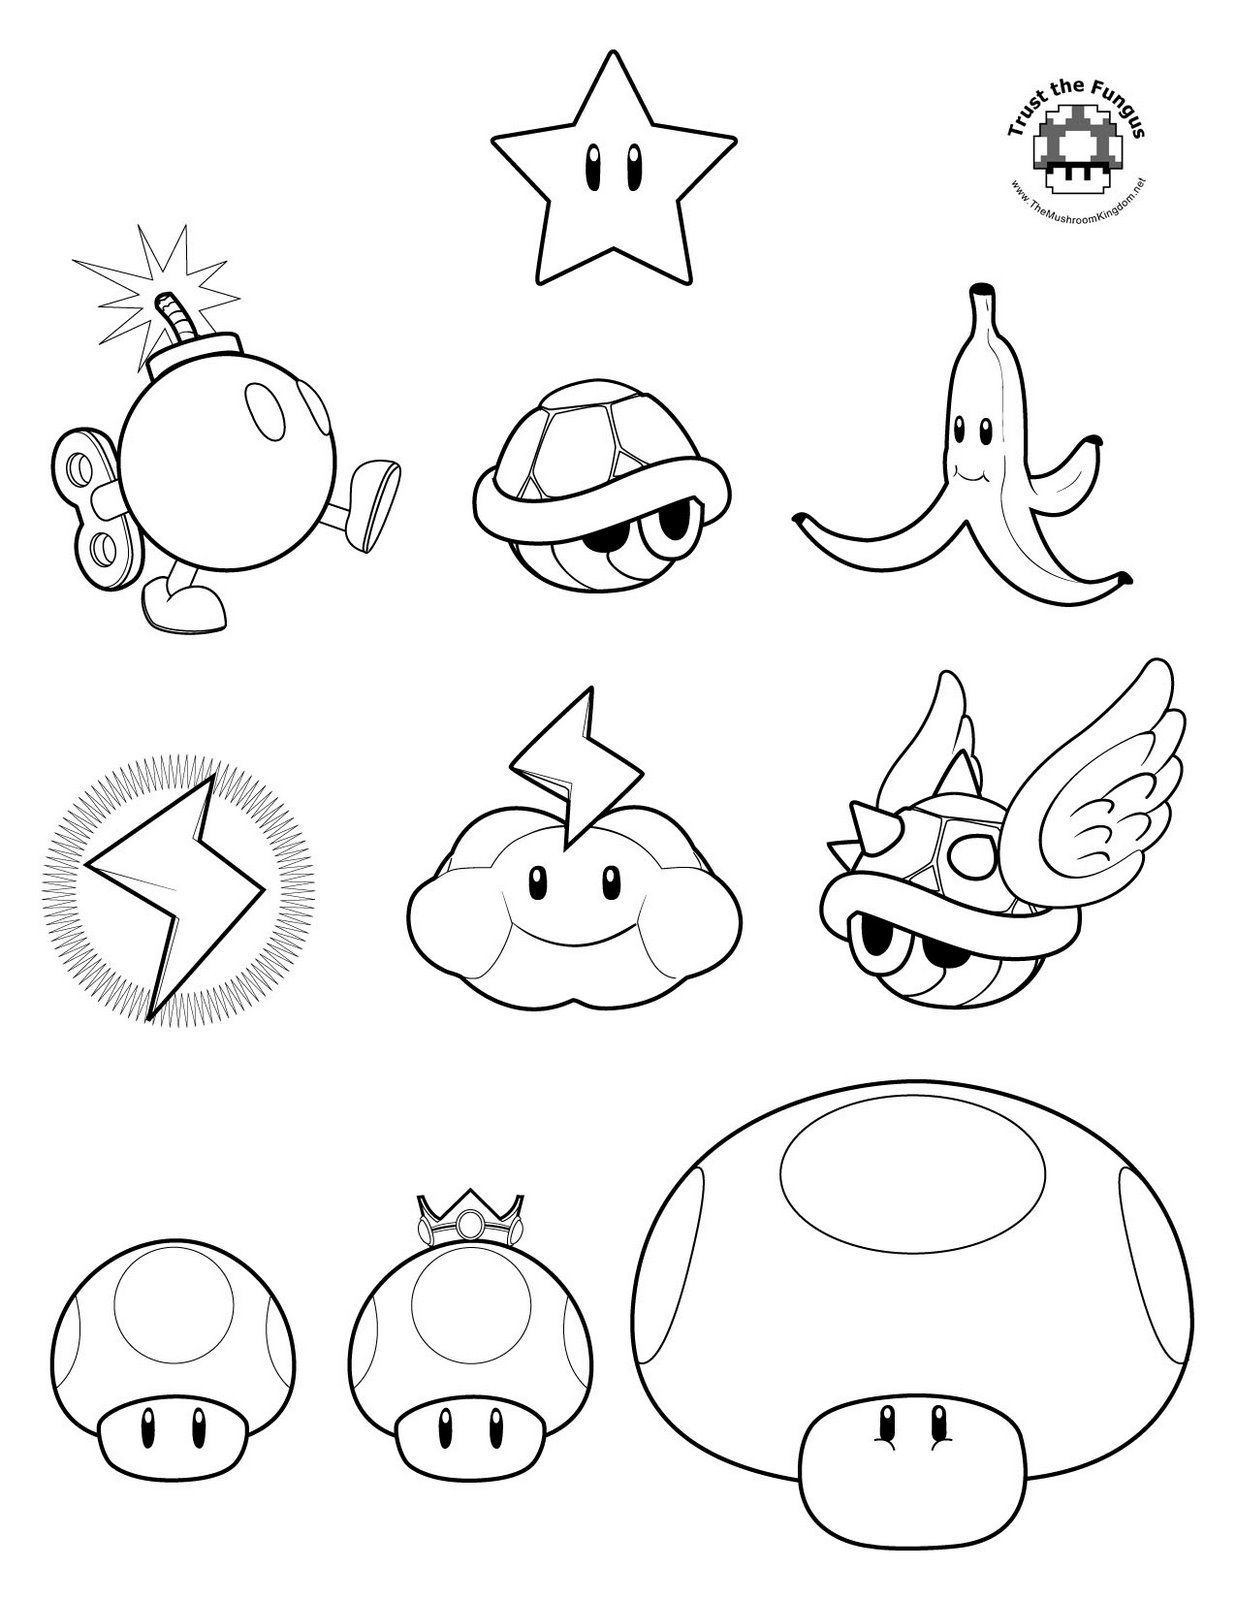 Mario Kart Coloring Pages Super Mario Coloring Pages Mario Coloring Pages Coloring Books